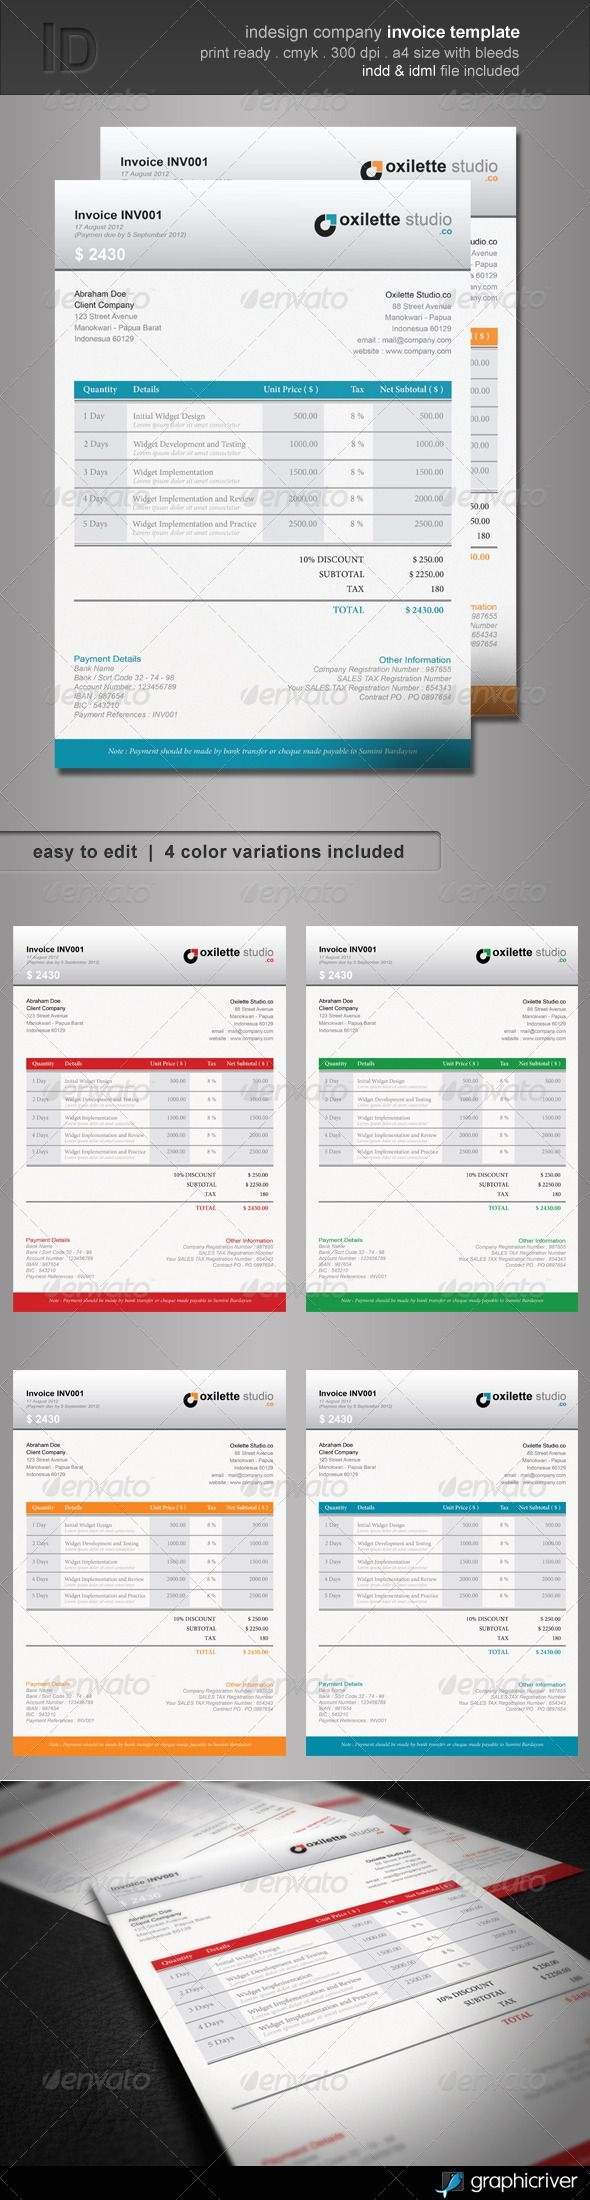 indesign invoice template indesign company invoice template graphicriver features clean 590 X 2200